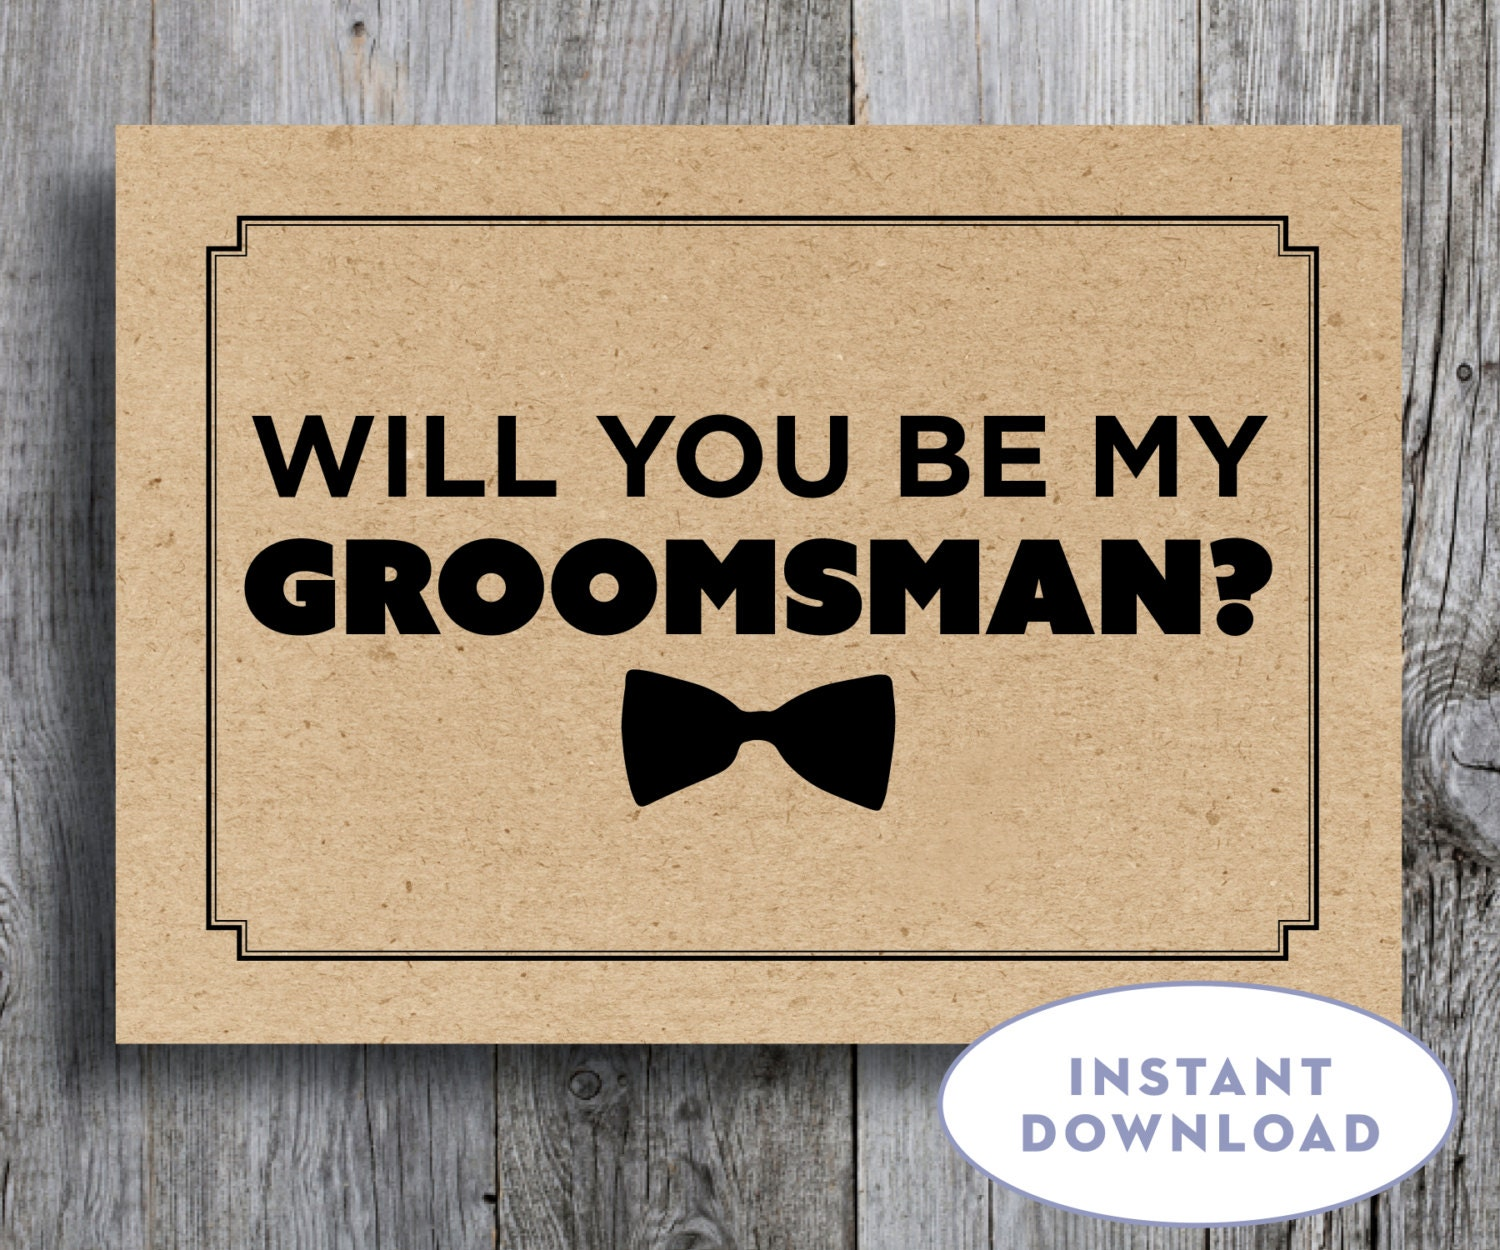 Comprehensive image intended for will you be my groomsman printable